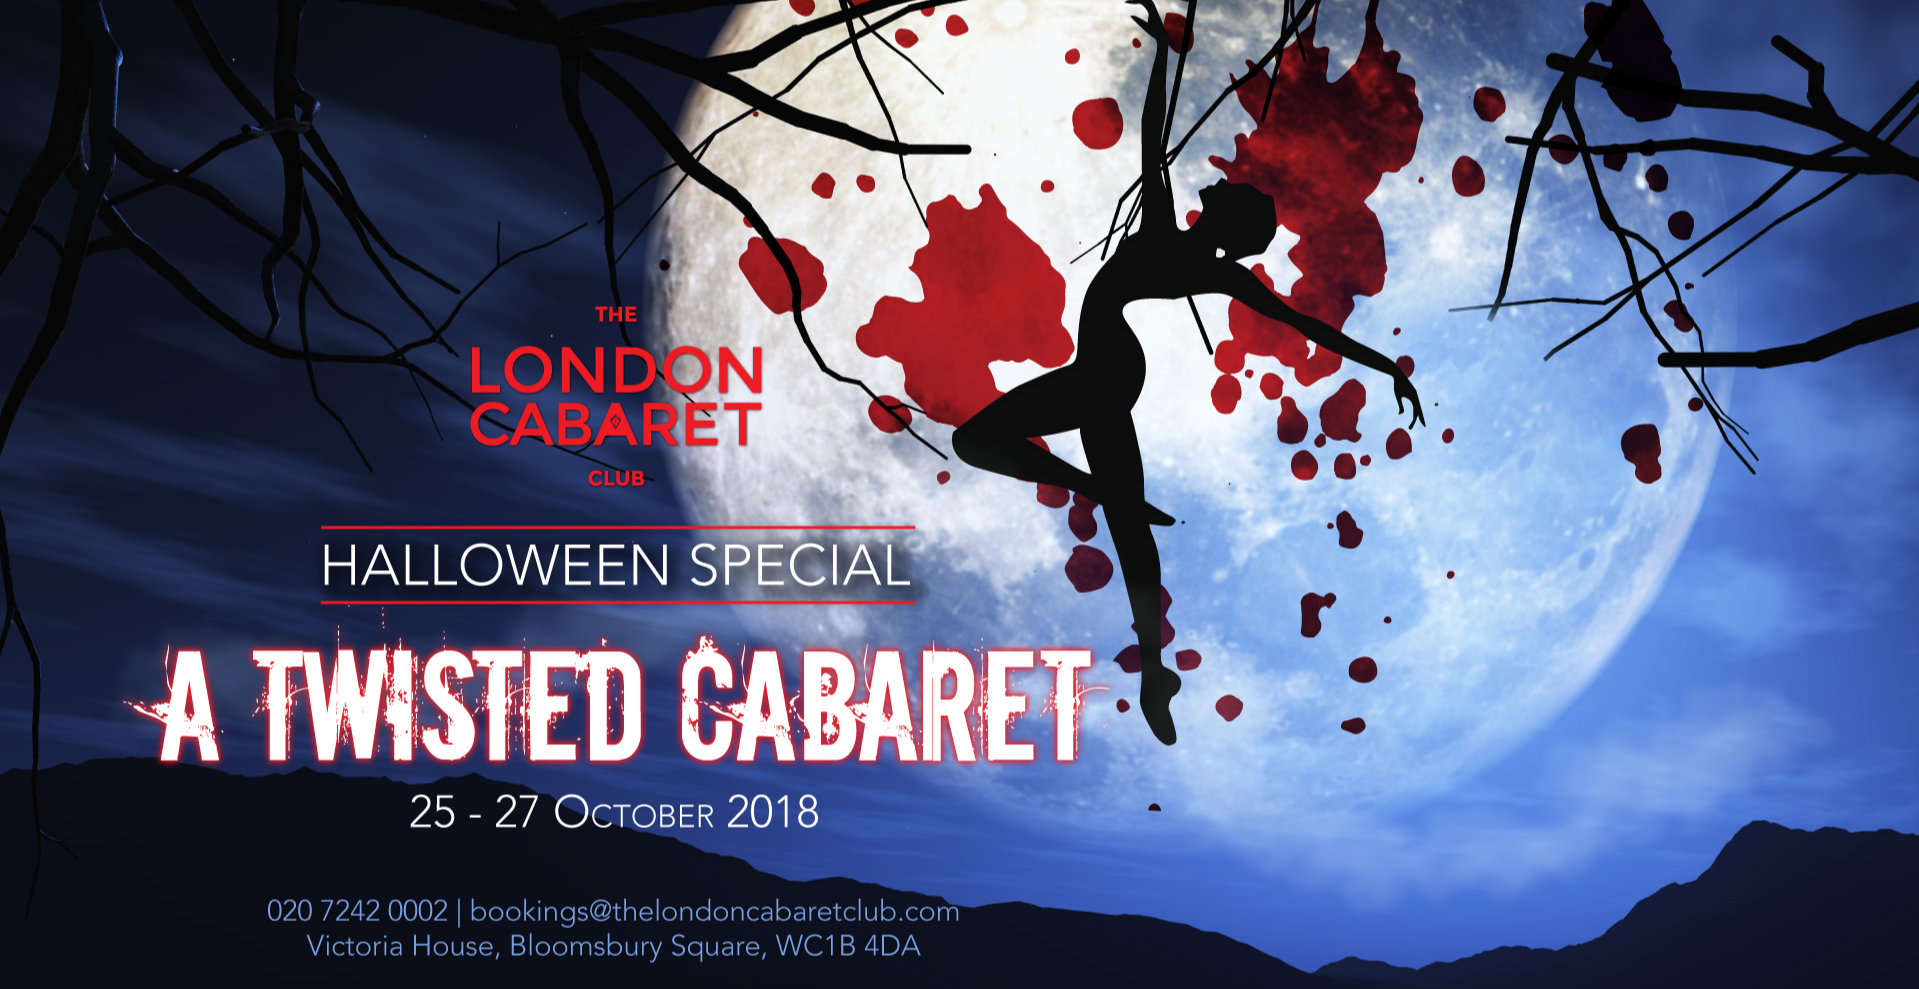 A Twisted Cabaret - Halloween Weekend